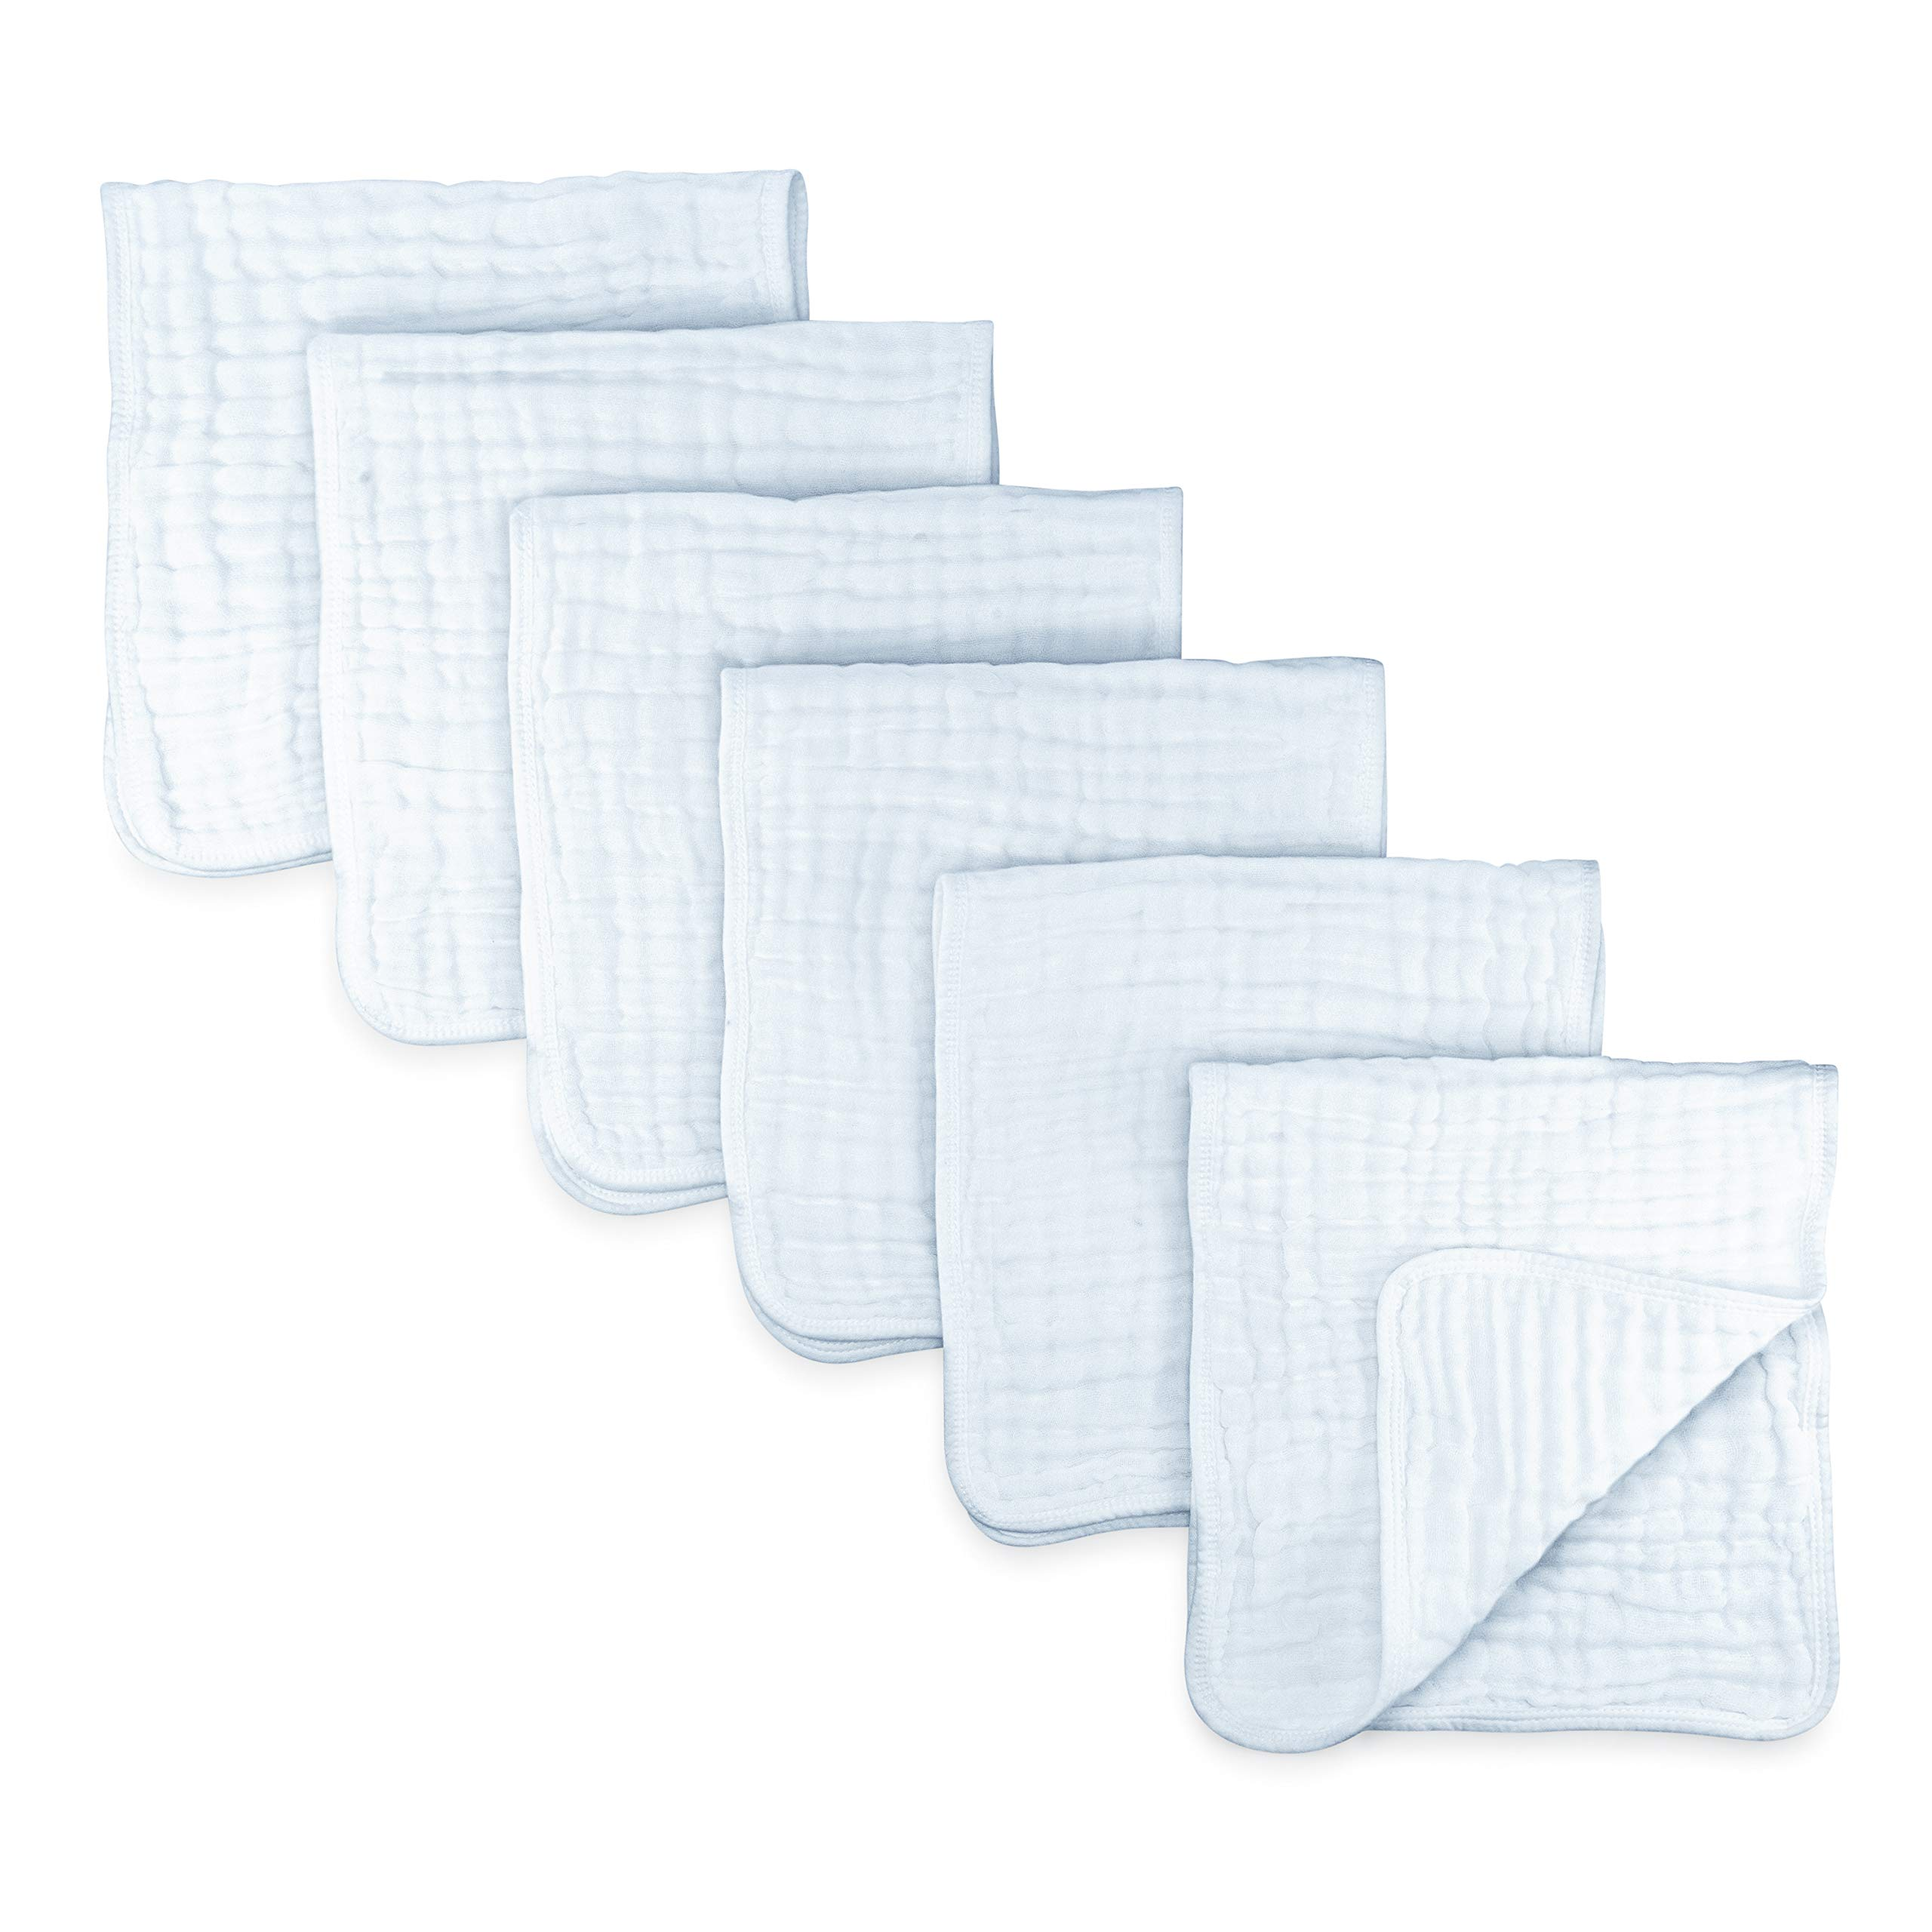 Comfy Cubs Muslin Burp Cloths 6 Pack Large 100% Cotton Hand Washcloths 6 Layer Extra Absorbent and Soft (White)